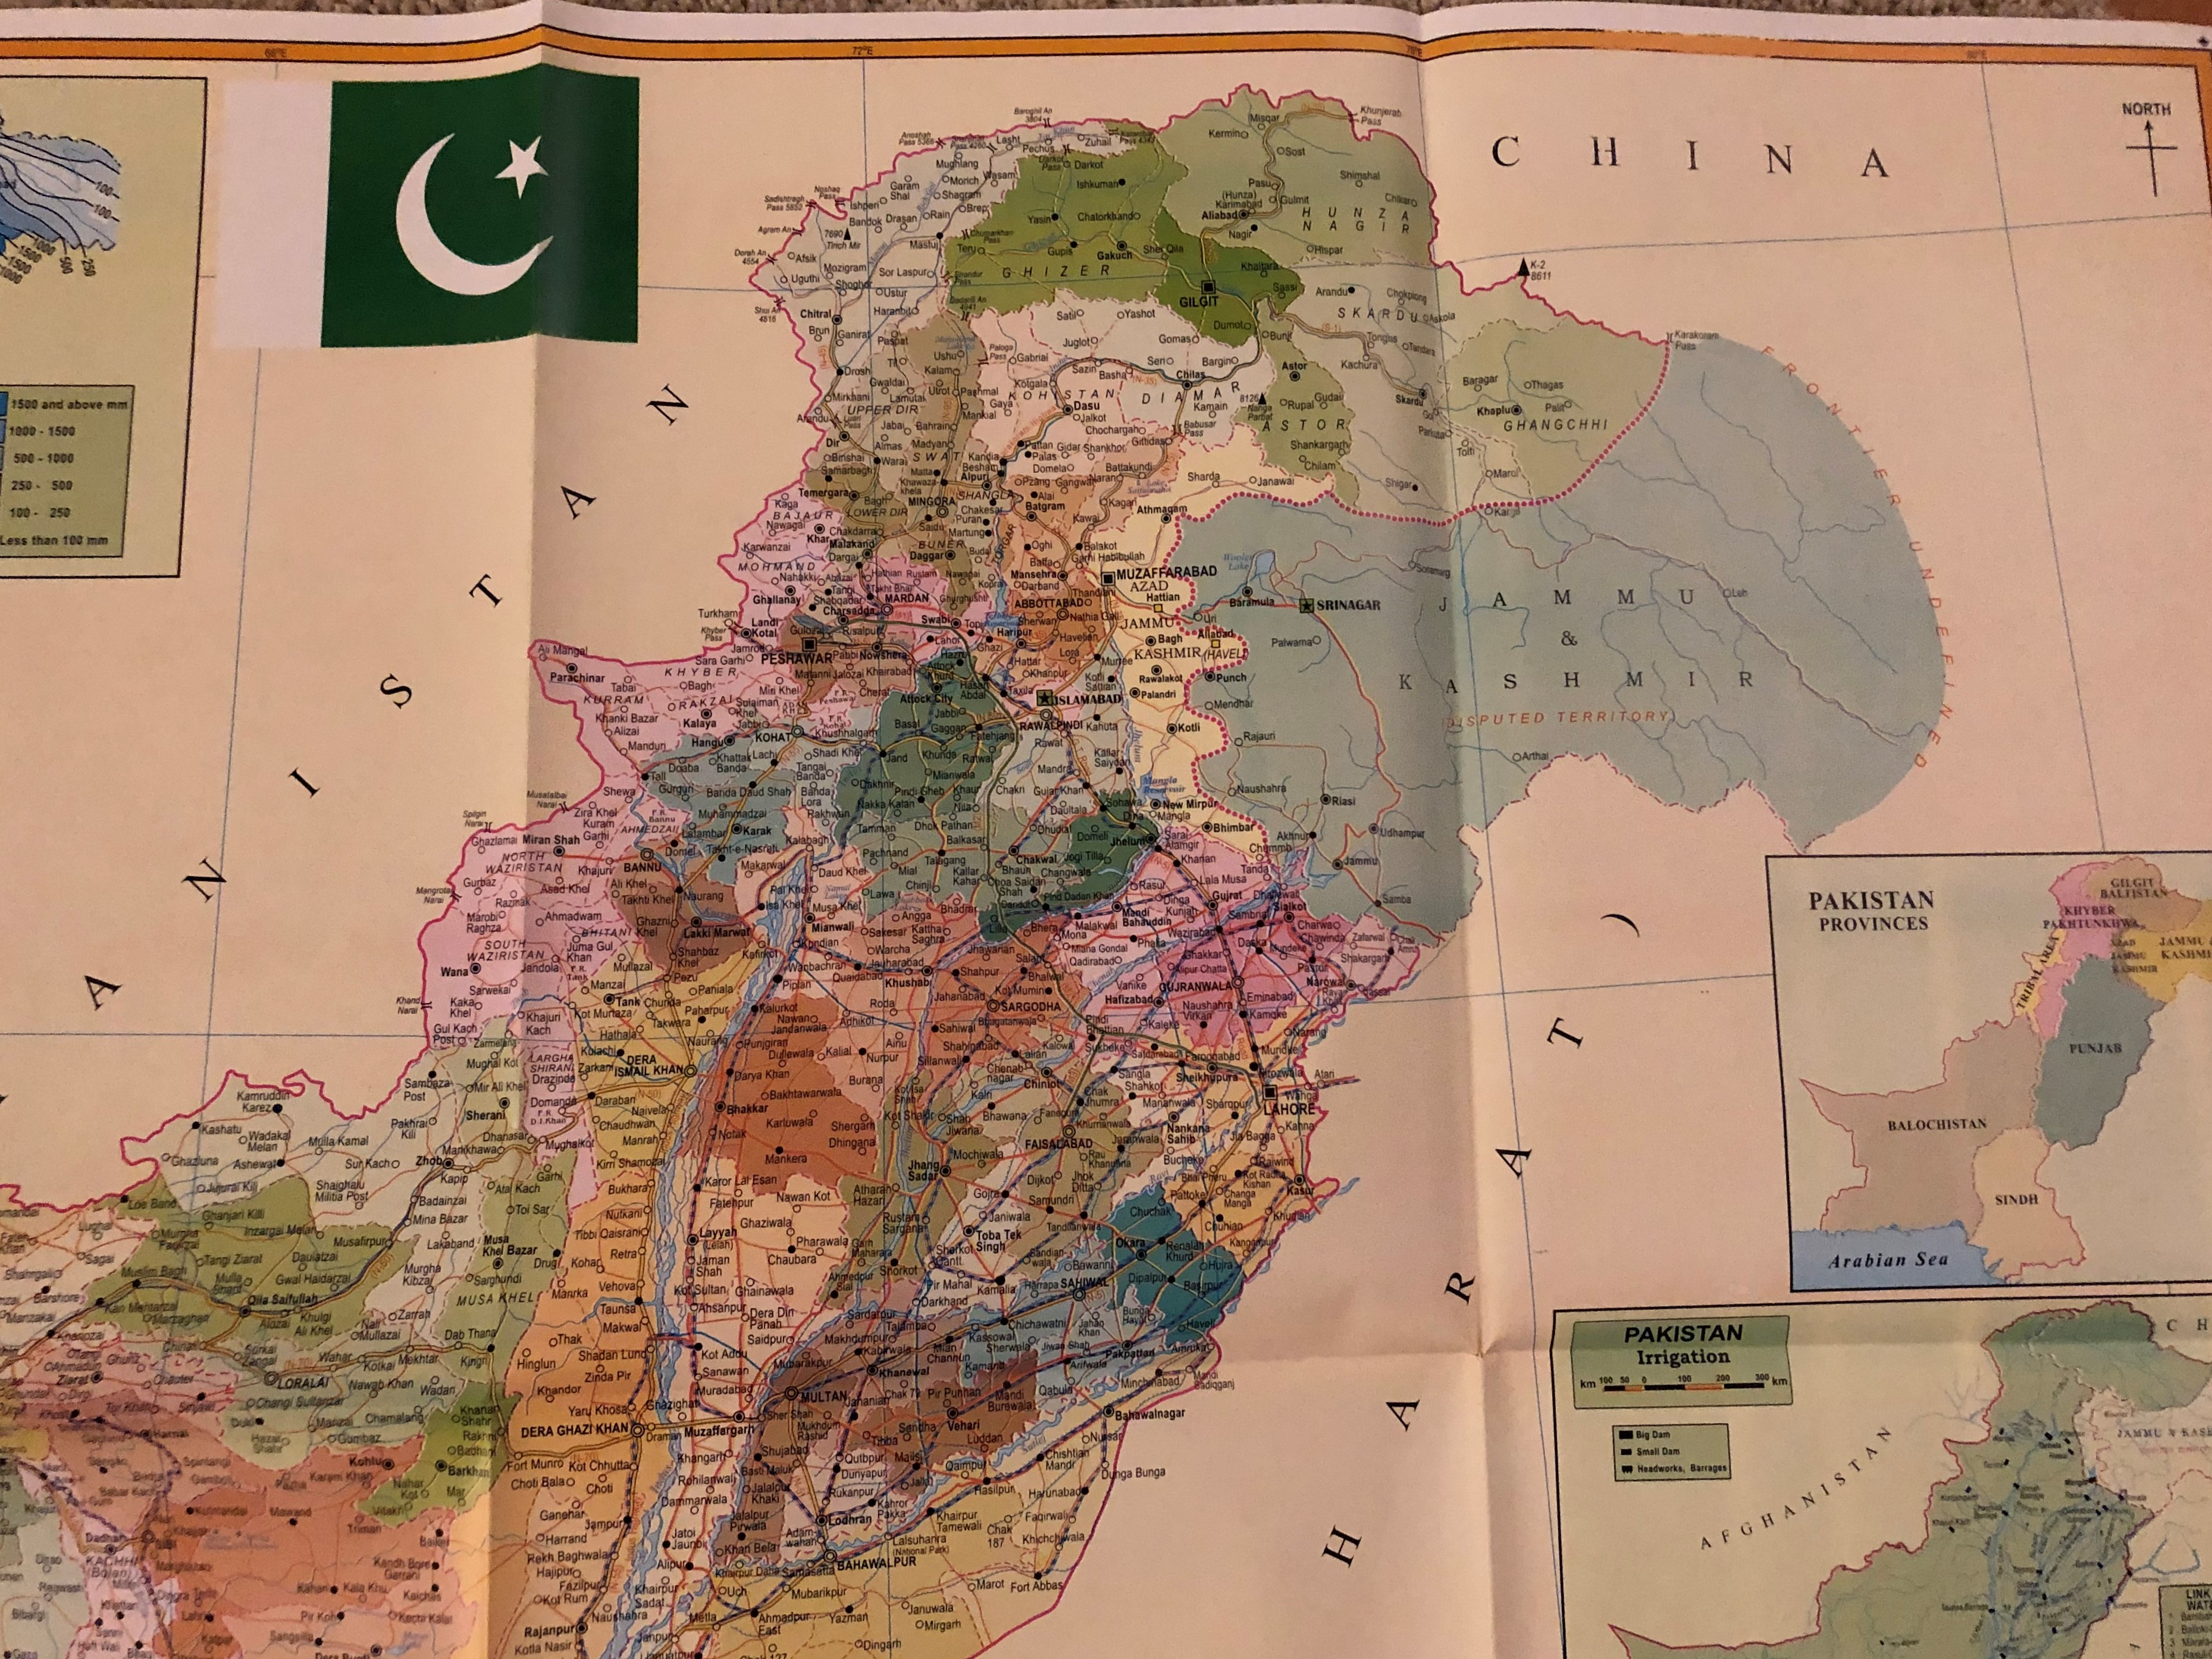 pakistan-administrative-divisions-map-3-.jpg